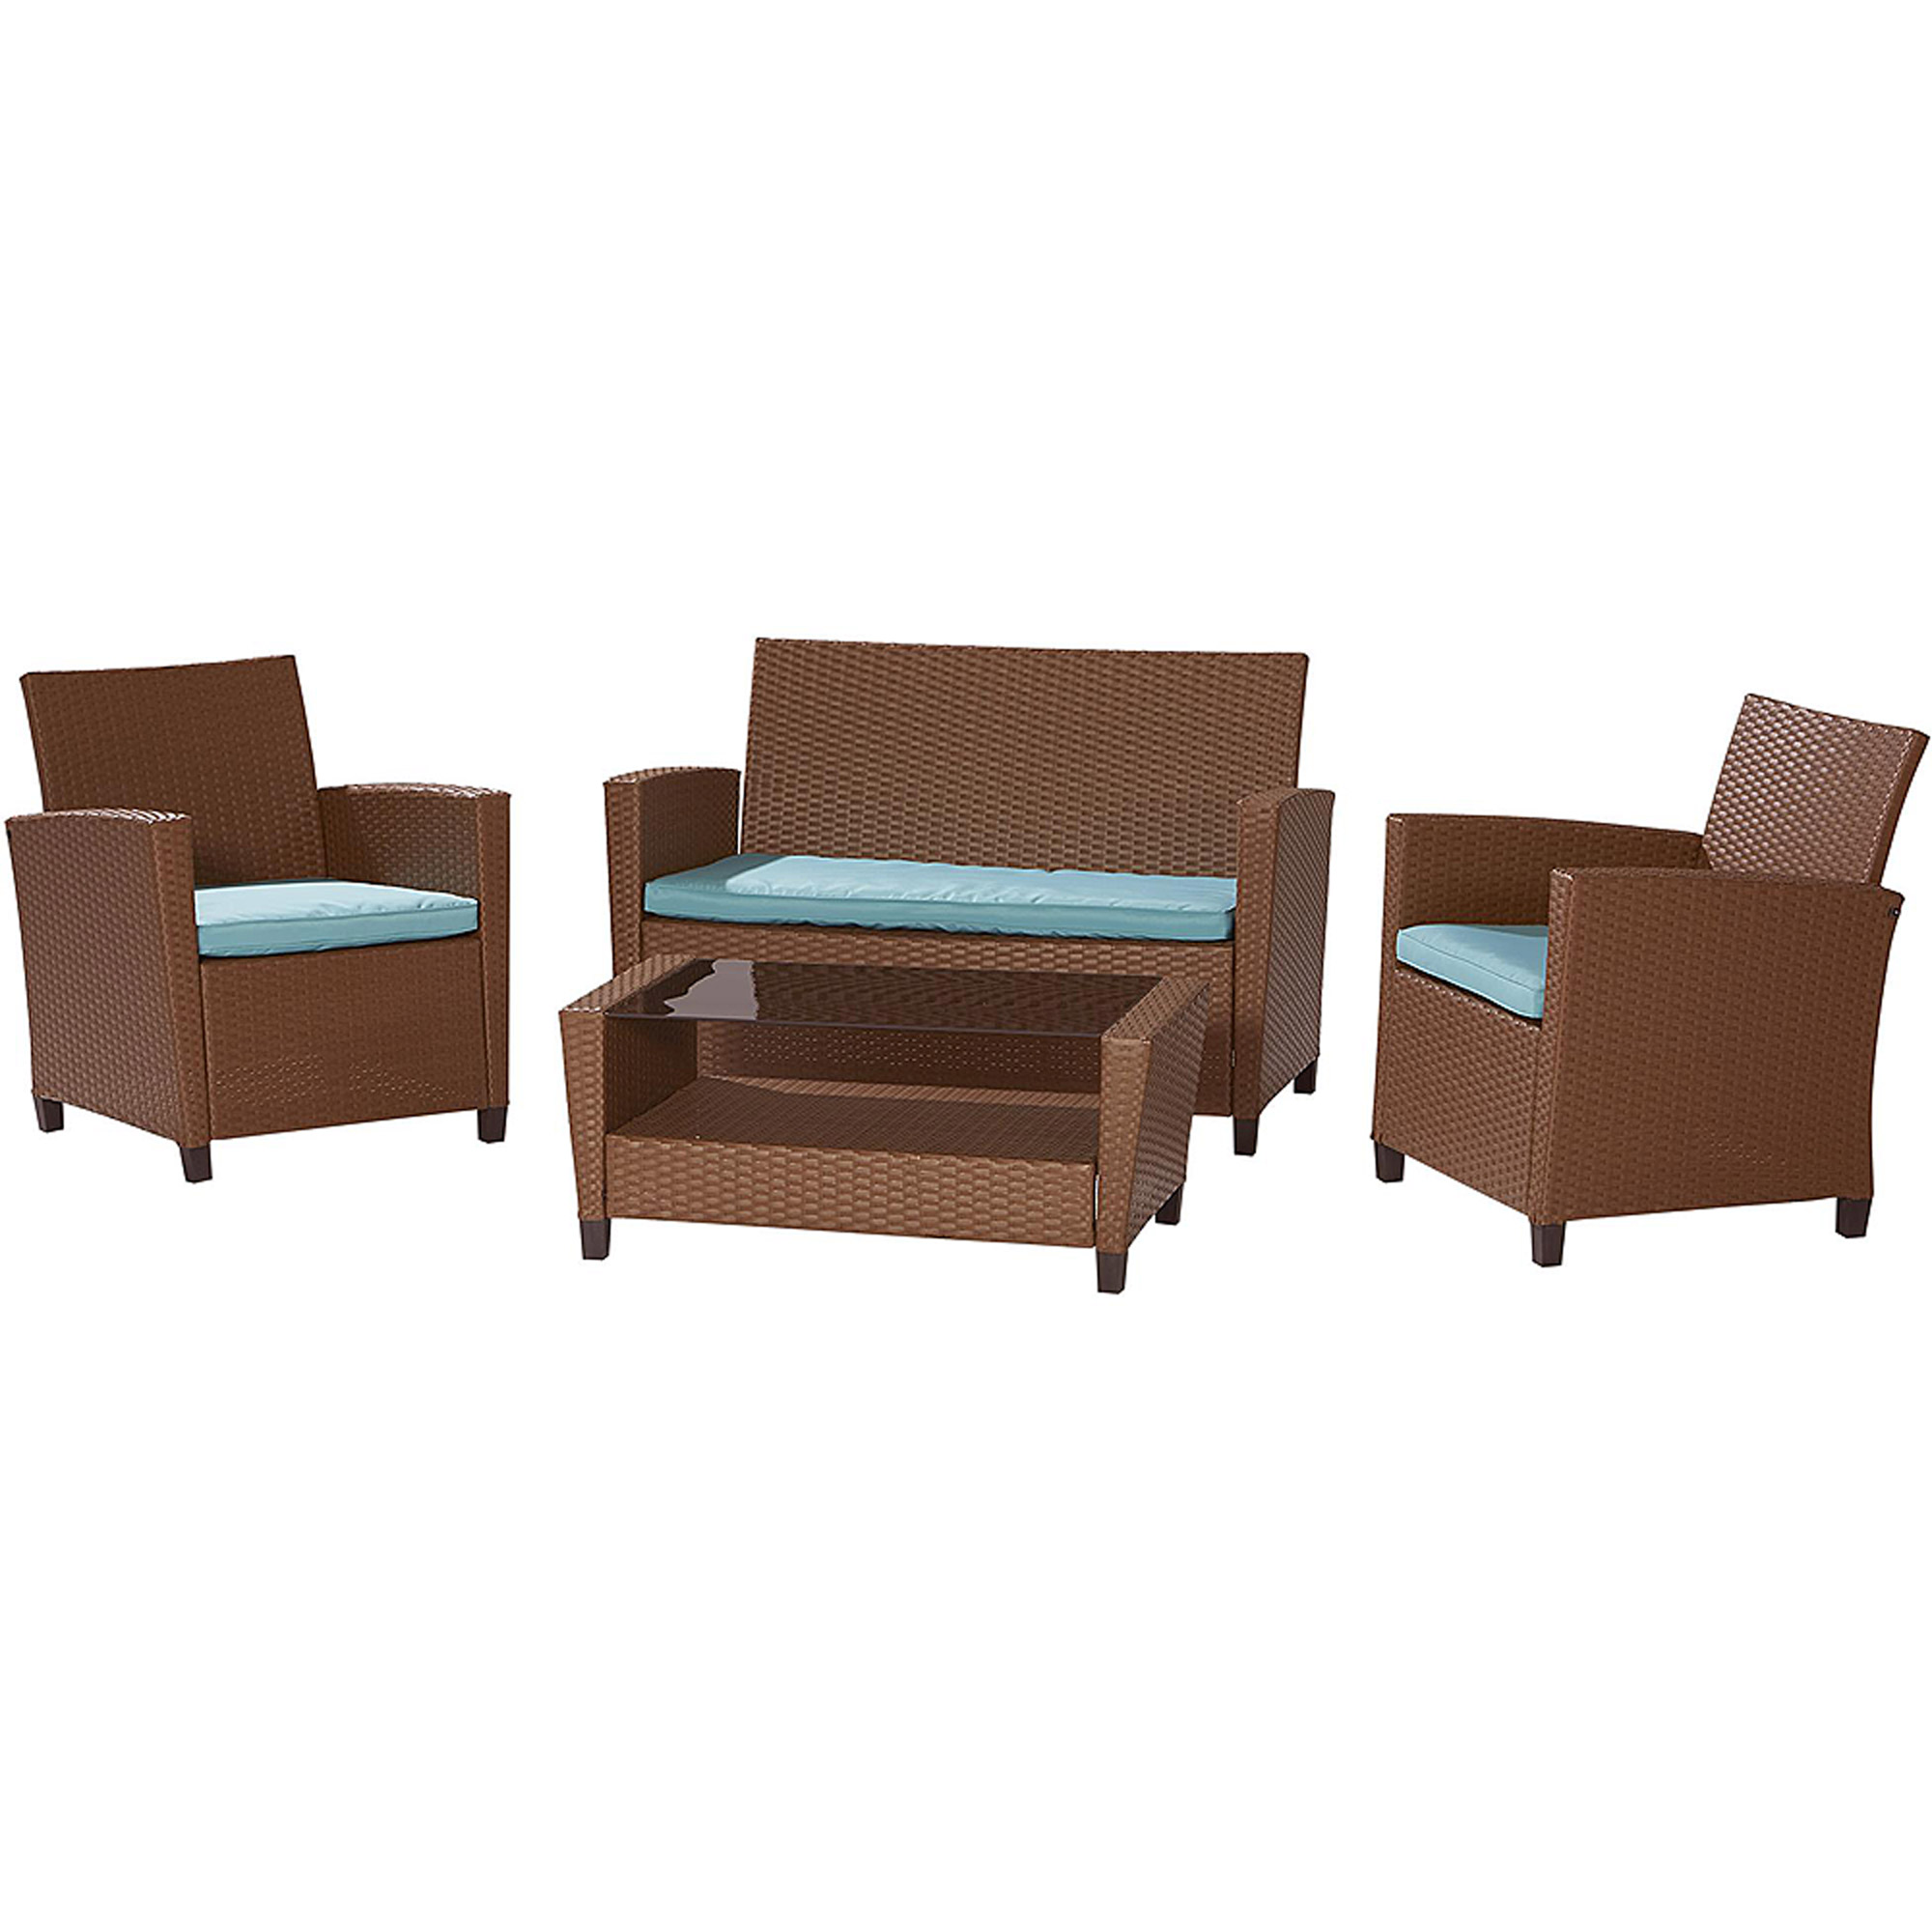 cosco outdoor malmo 4piece resin wicker patio set walmartcom - Resin Wicker Patio Furniture